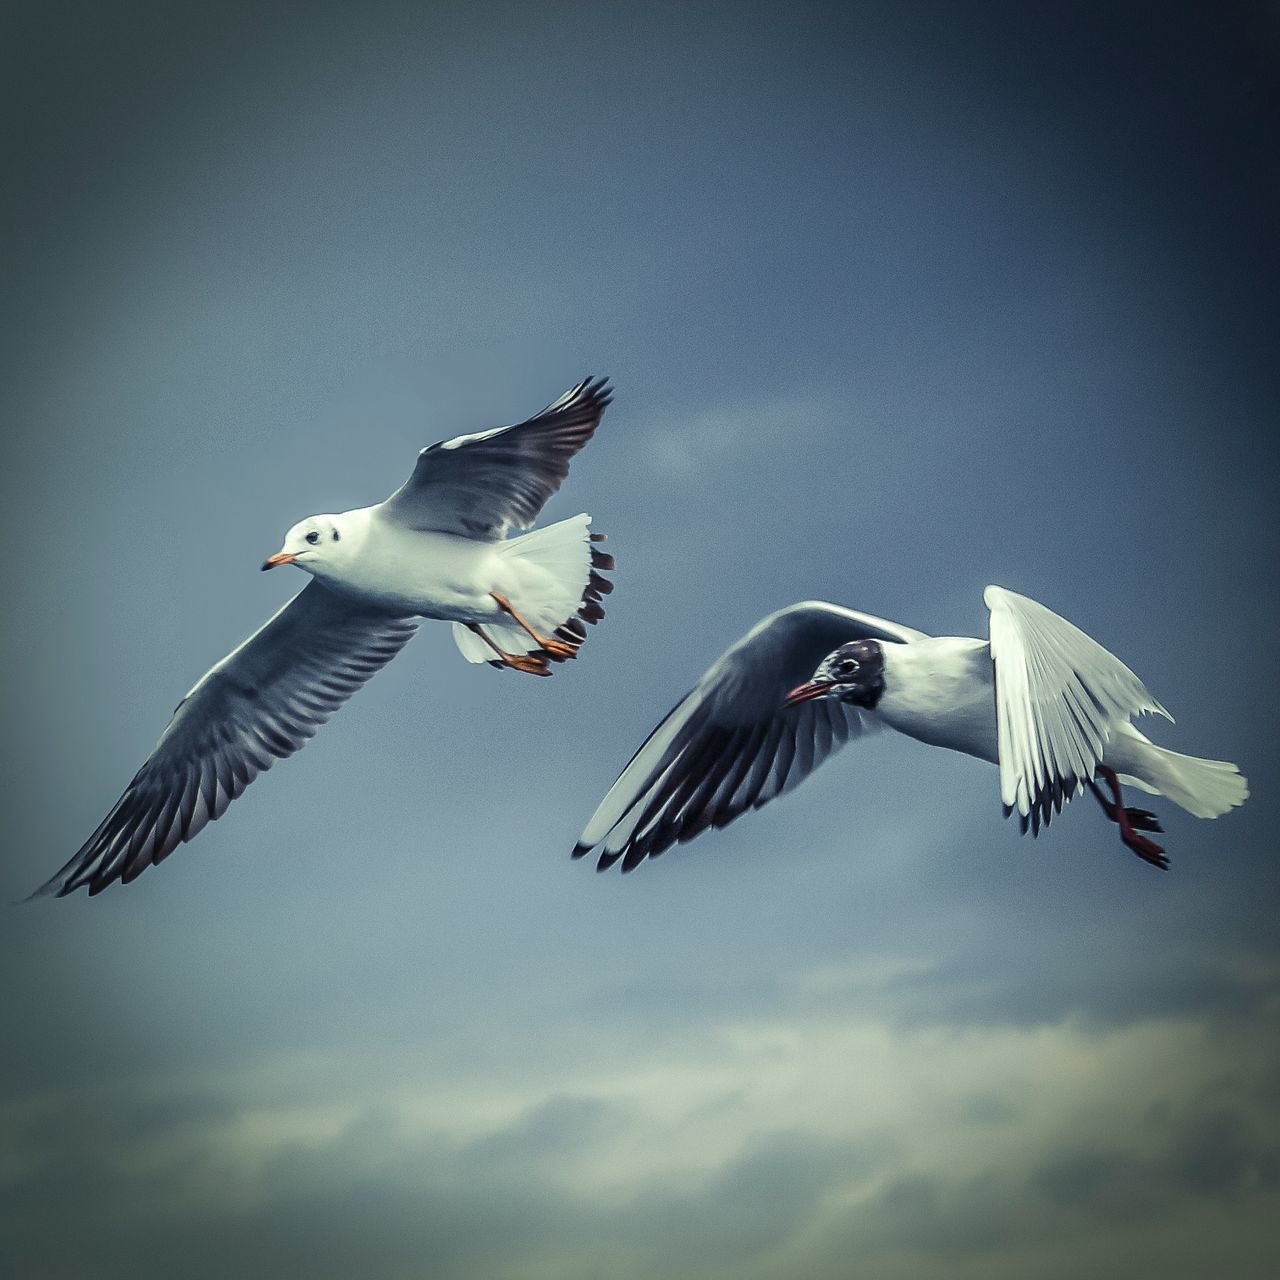 Bisgen Seagulls Enjoying Life Hello World Relaxing EyeEm Nature Lover Istanbul Eye4photography  Nature_collection EyeEm Masterclass